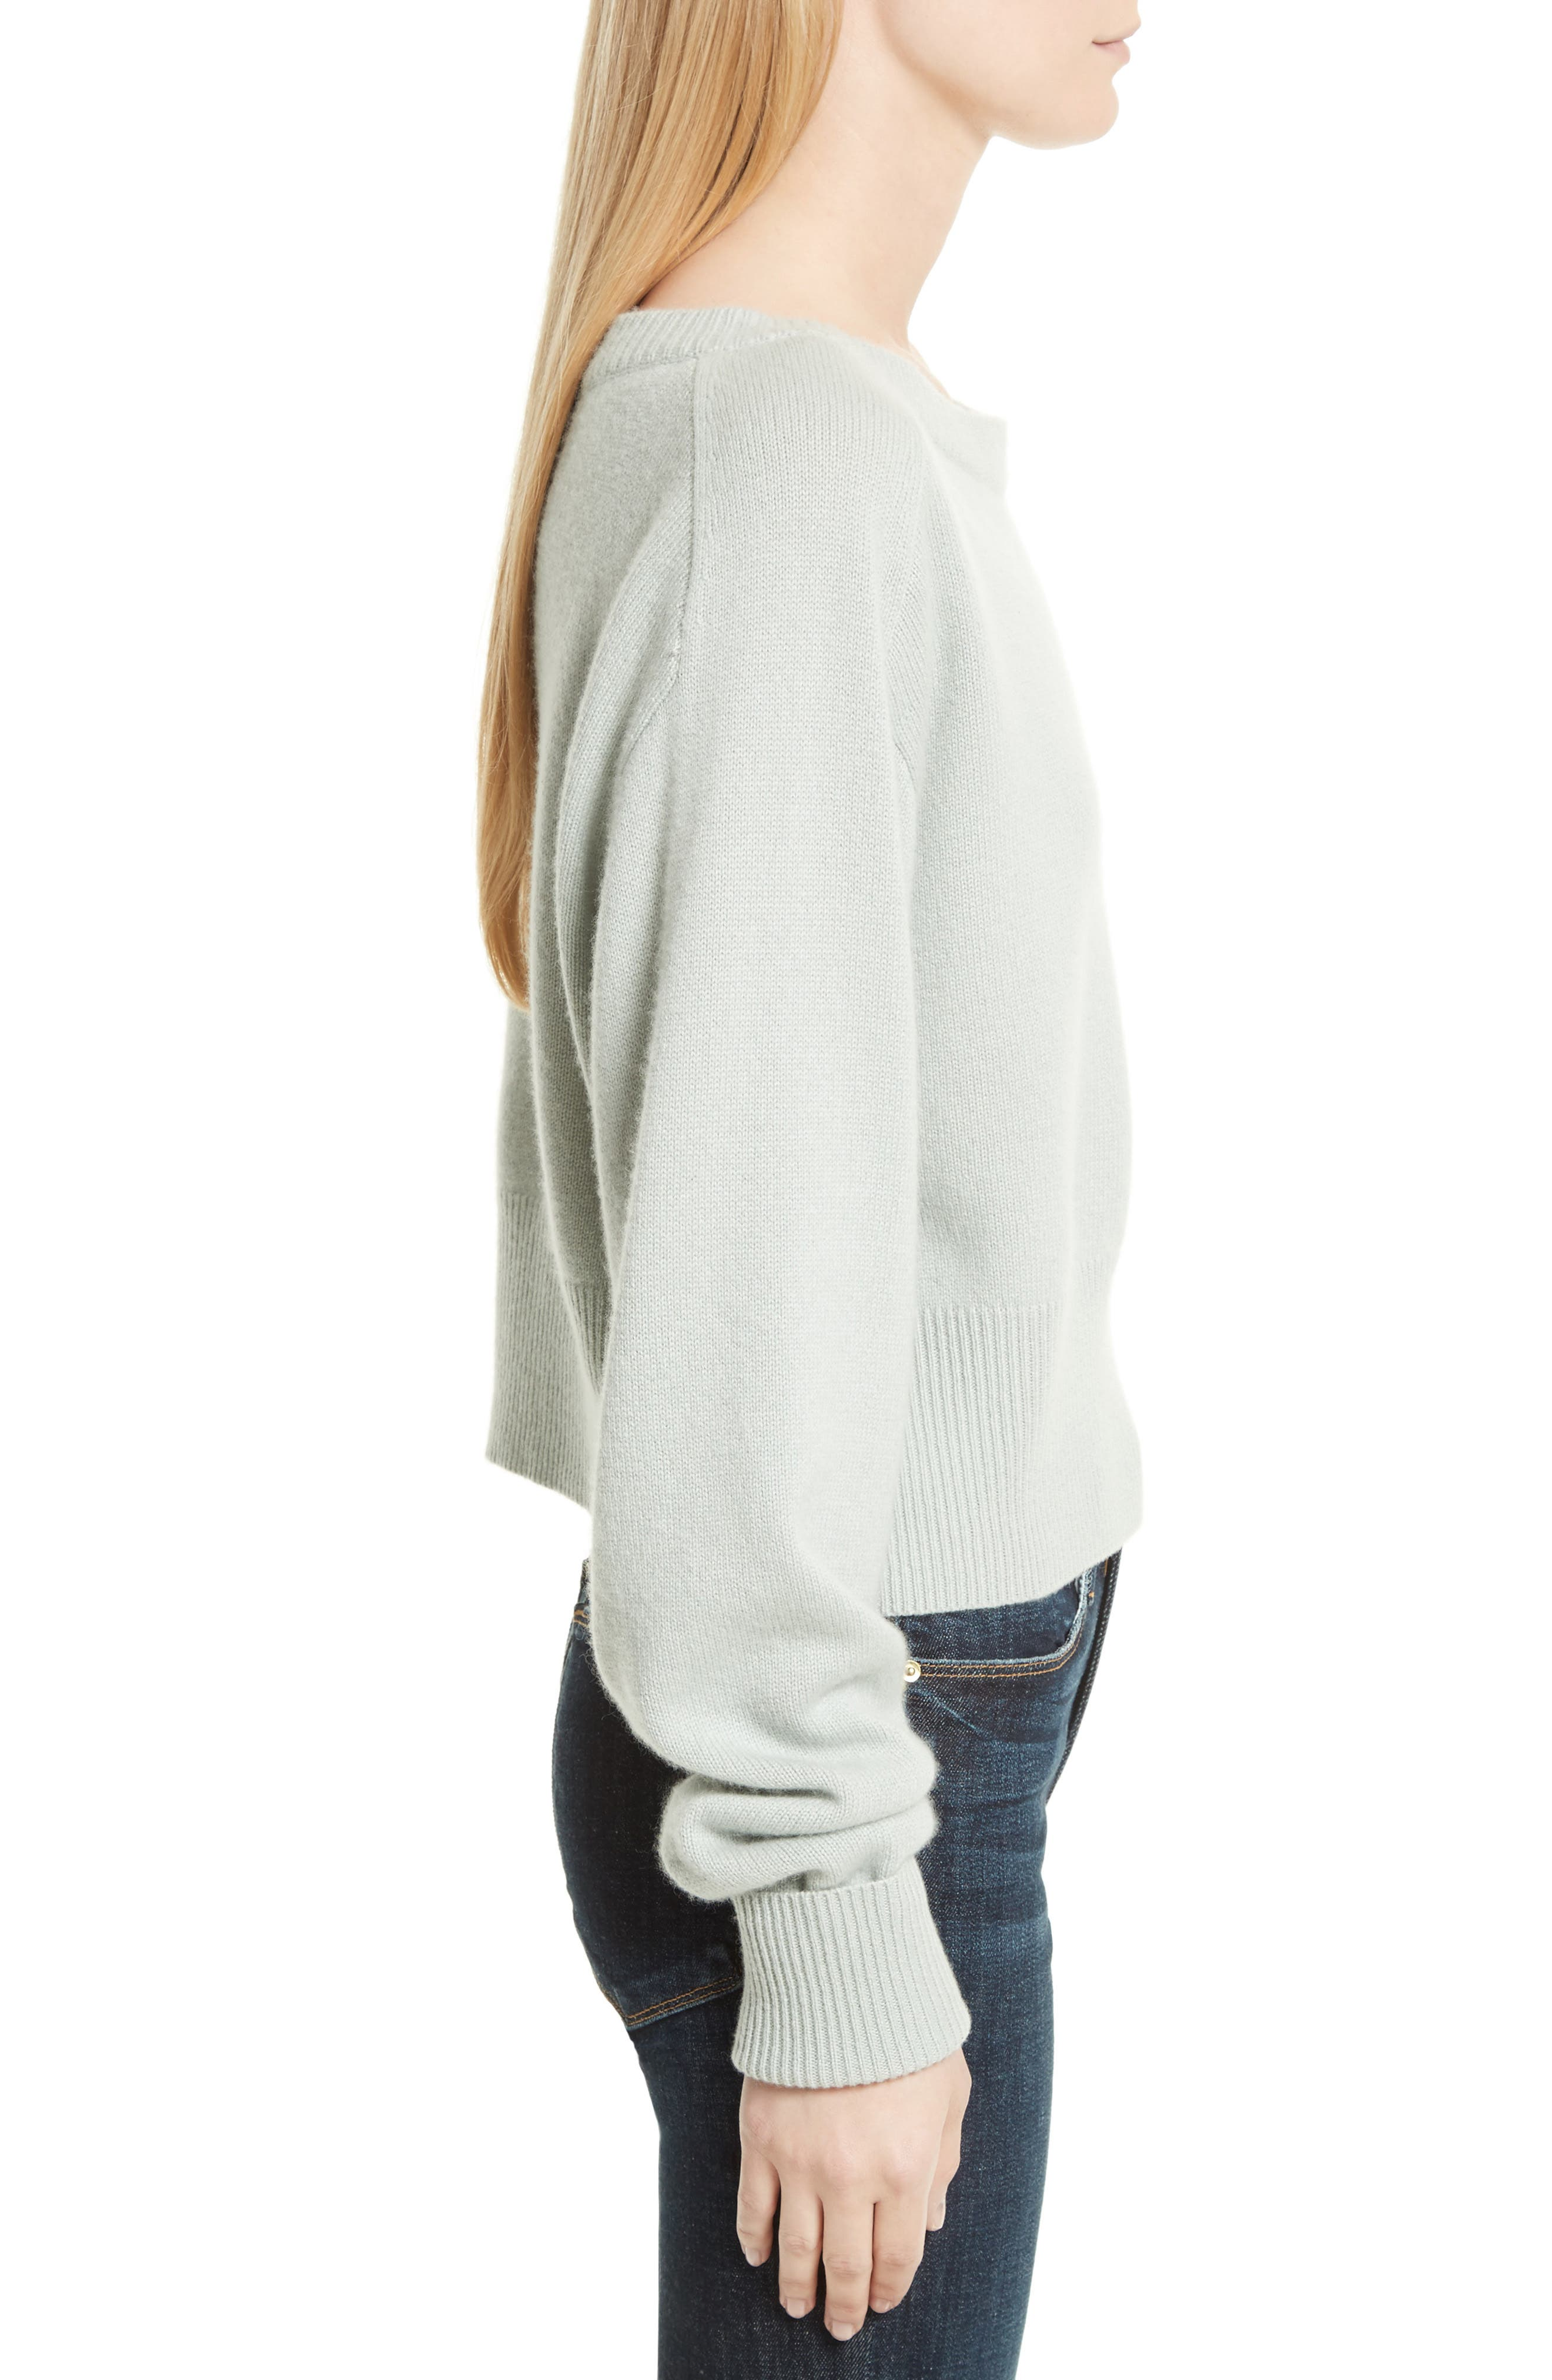 THEORY,                             Boat Neck Cashmere Sweater,                             Alternate thumbnail 3, color,                             374